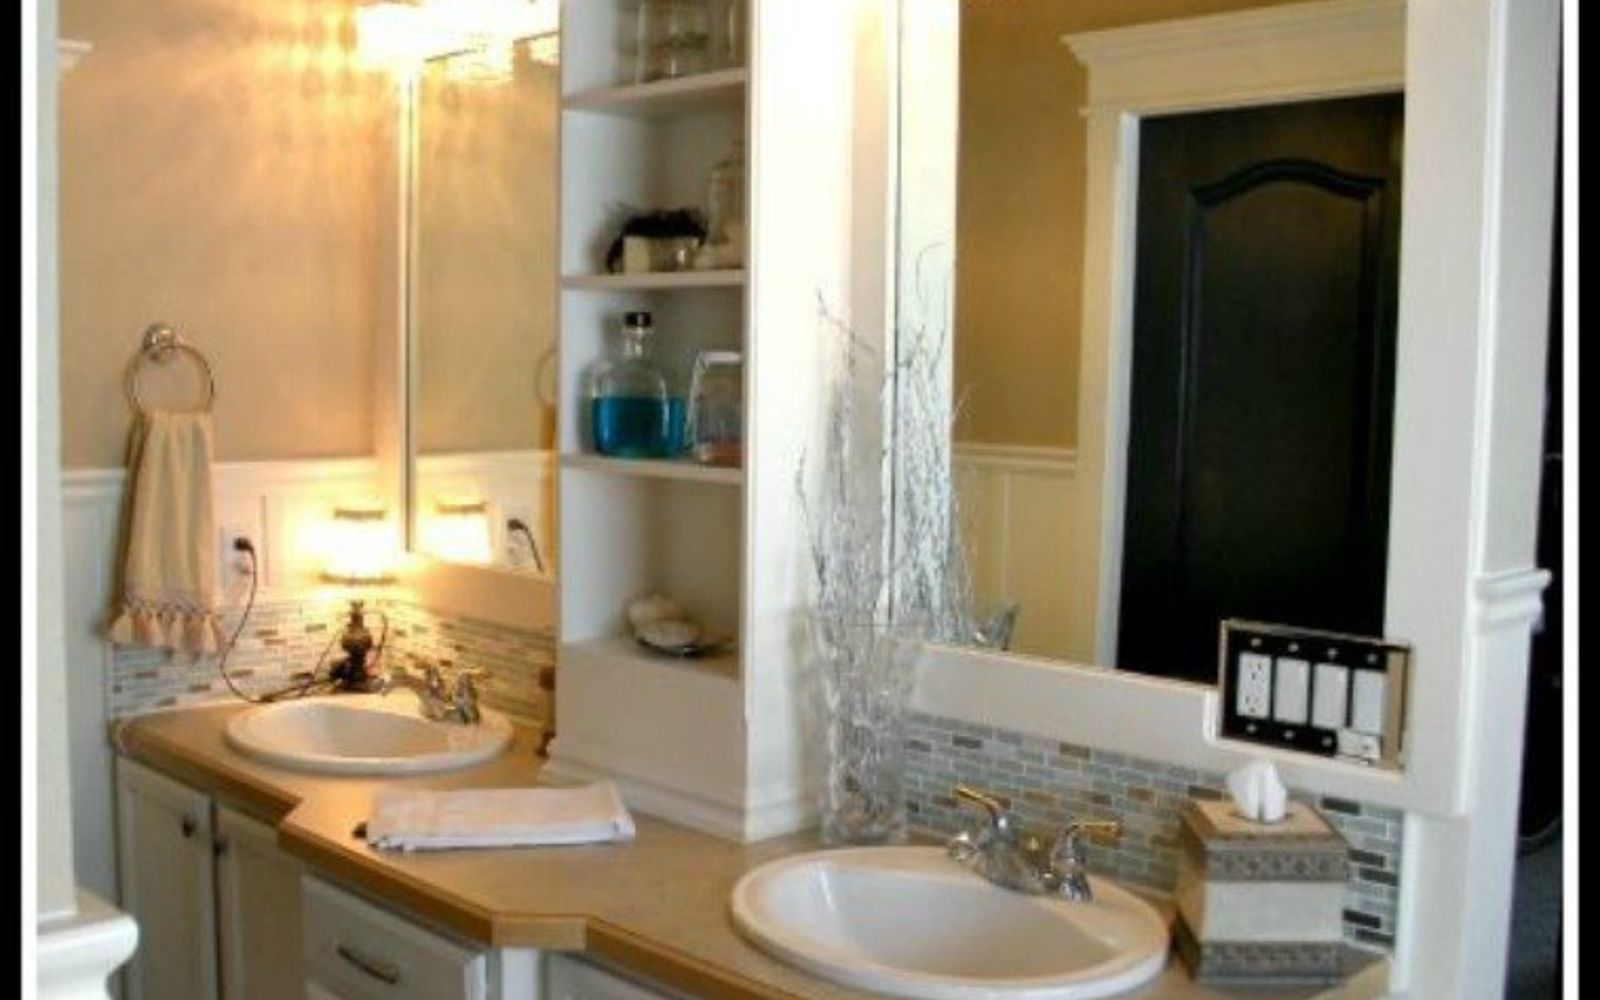 s 10 stunning ways to transform your bathroom mirror without removing it, bathroom ideas, home decor, Stick some shelves in between